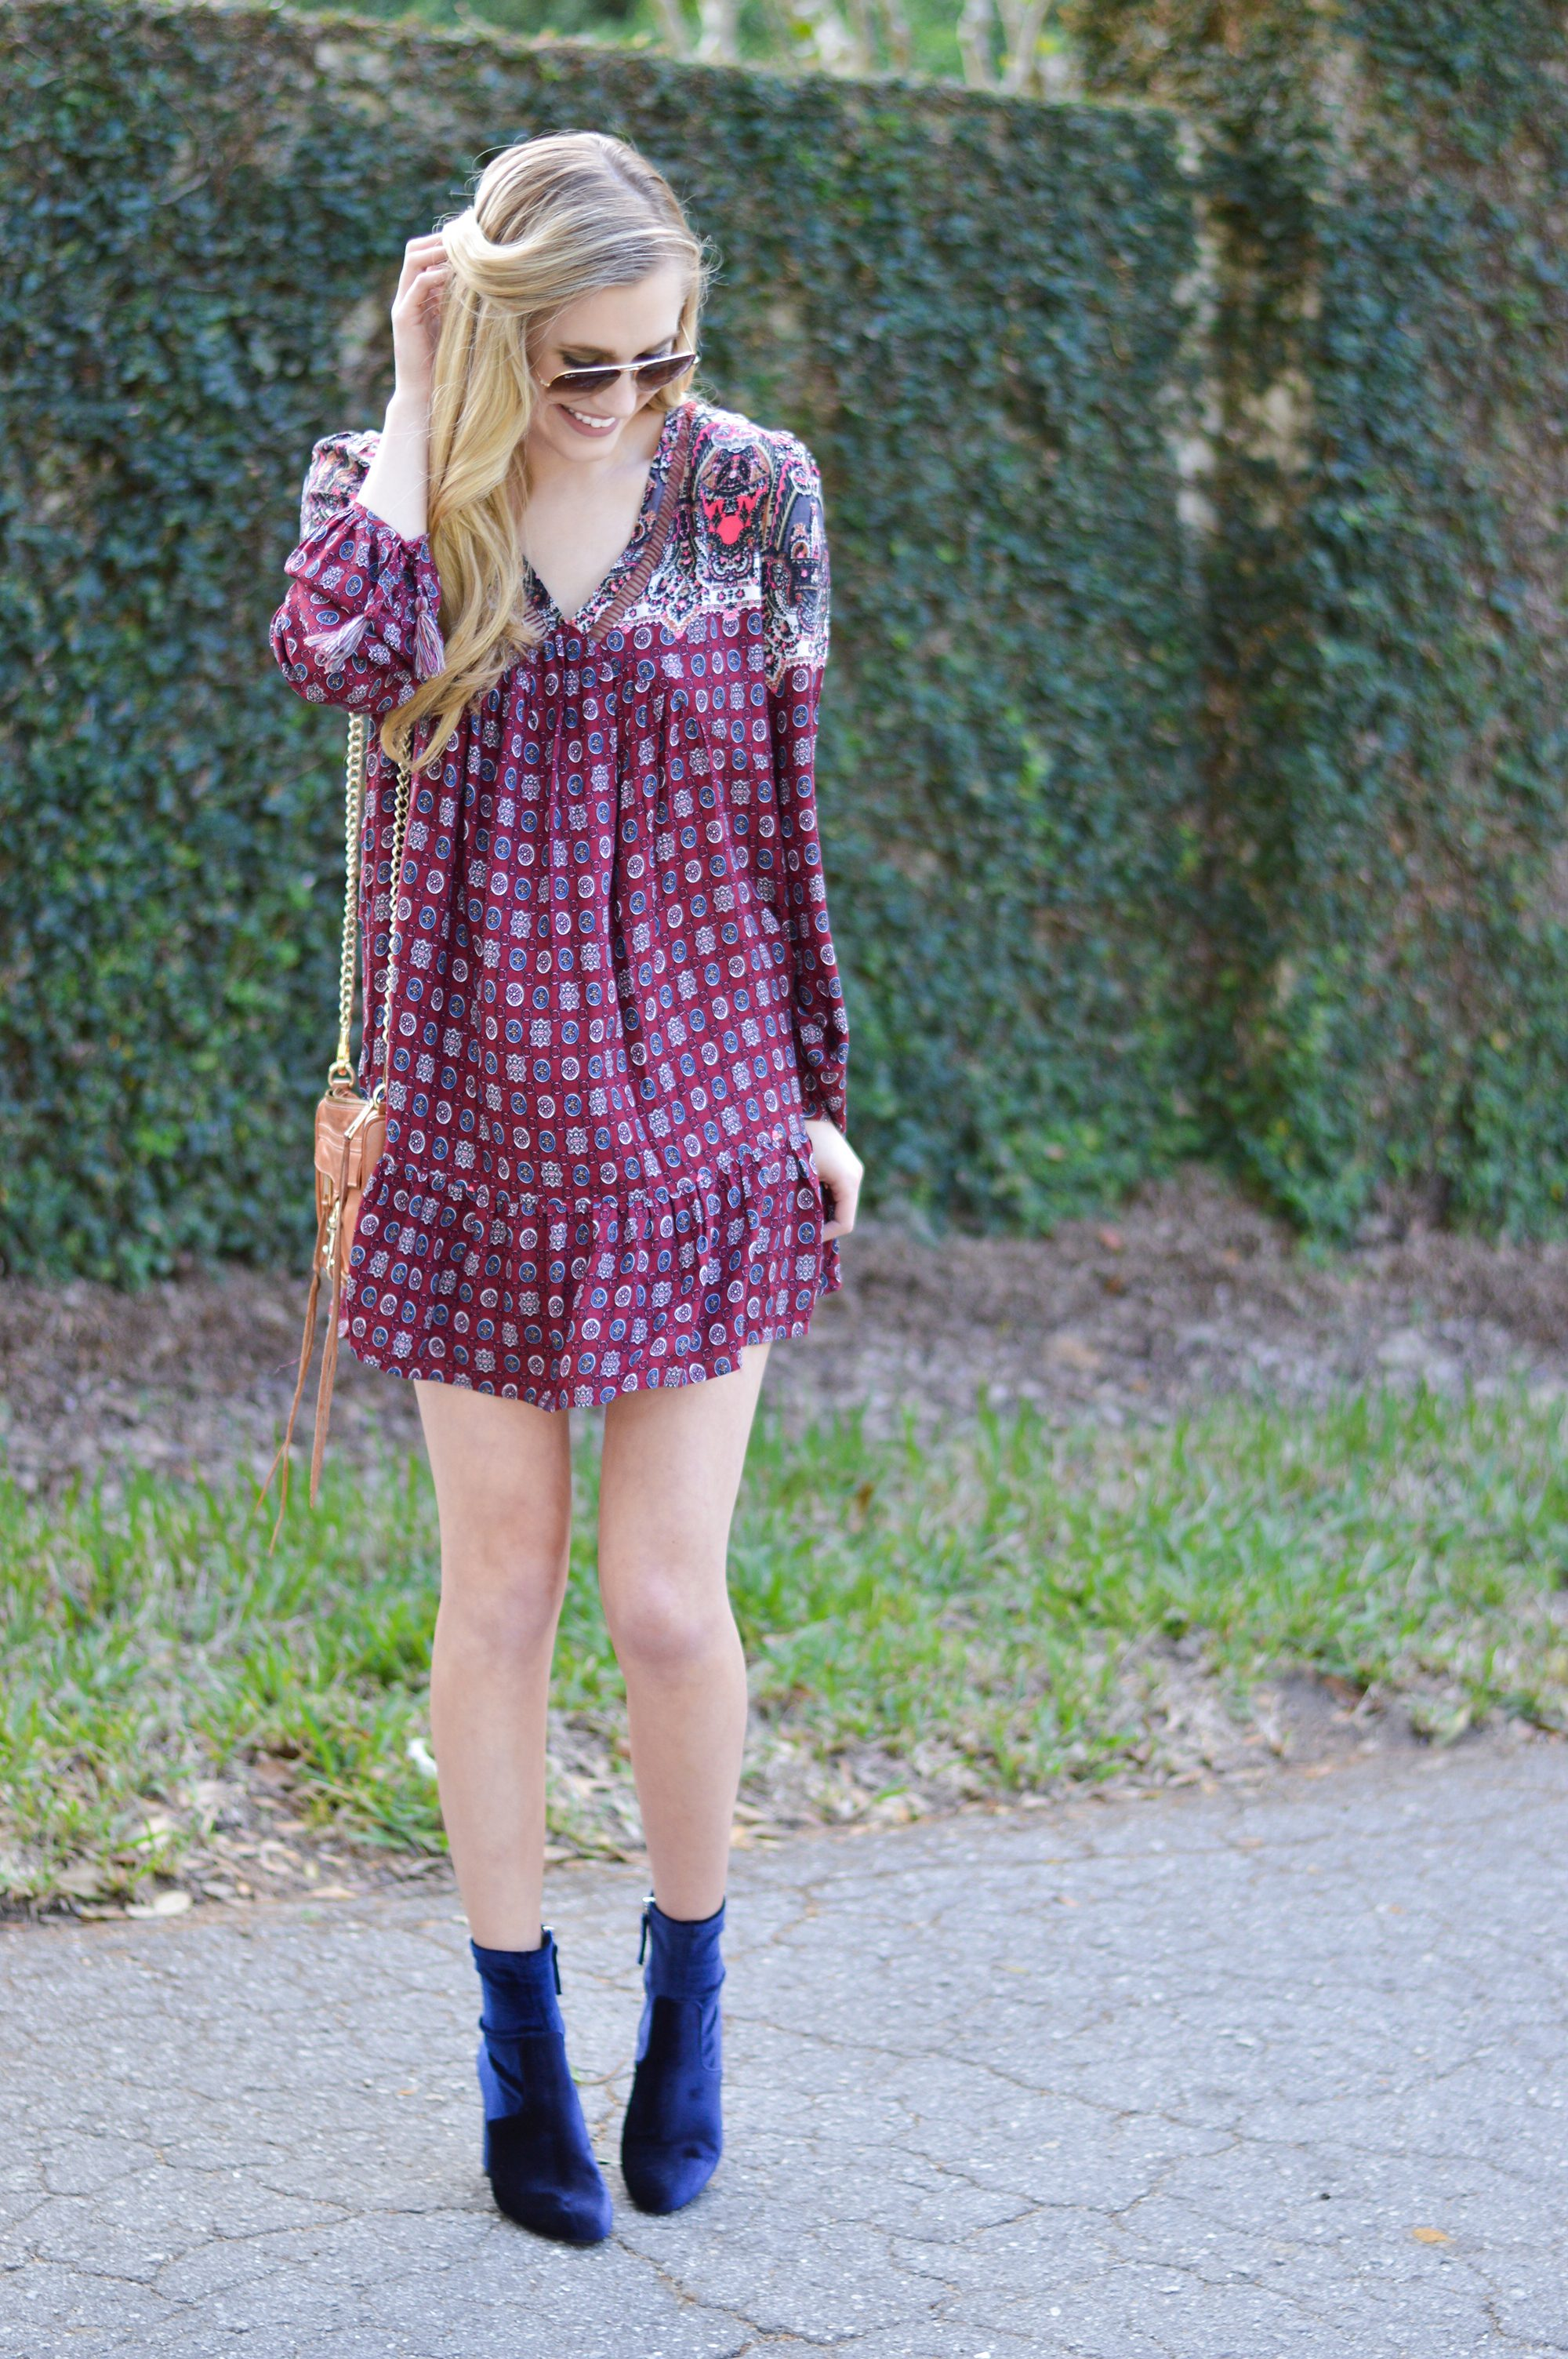 styelled-blog-fblogger-style-blogger-fashion-trends-fall-fashions-trendy-sweater-weather-dresses-fall-dress-suede-velvet-blue-blonde-src-shannon-roth-collections-ootd-umgee-03